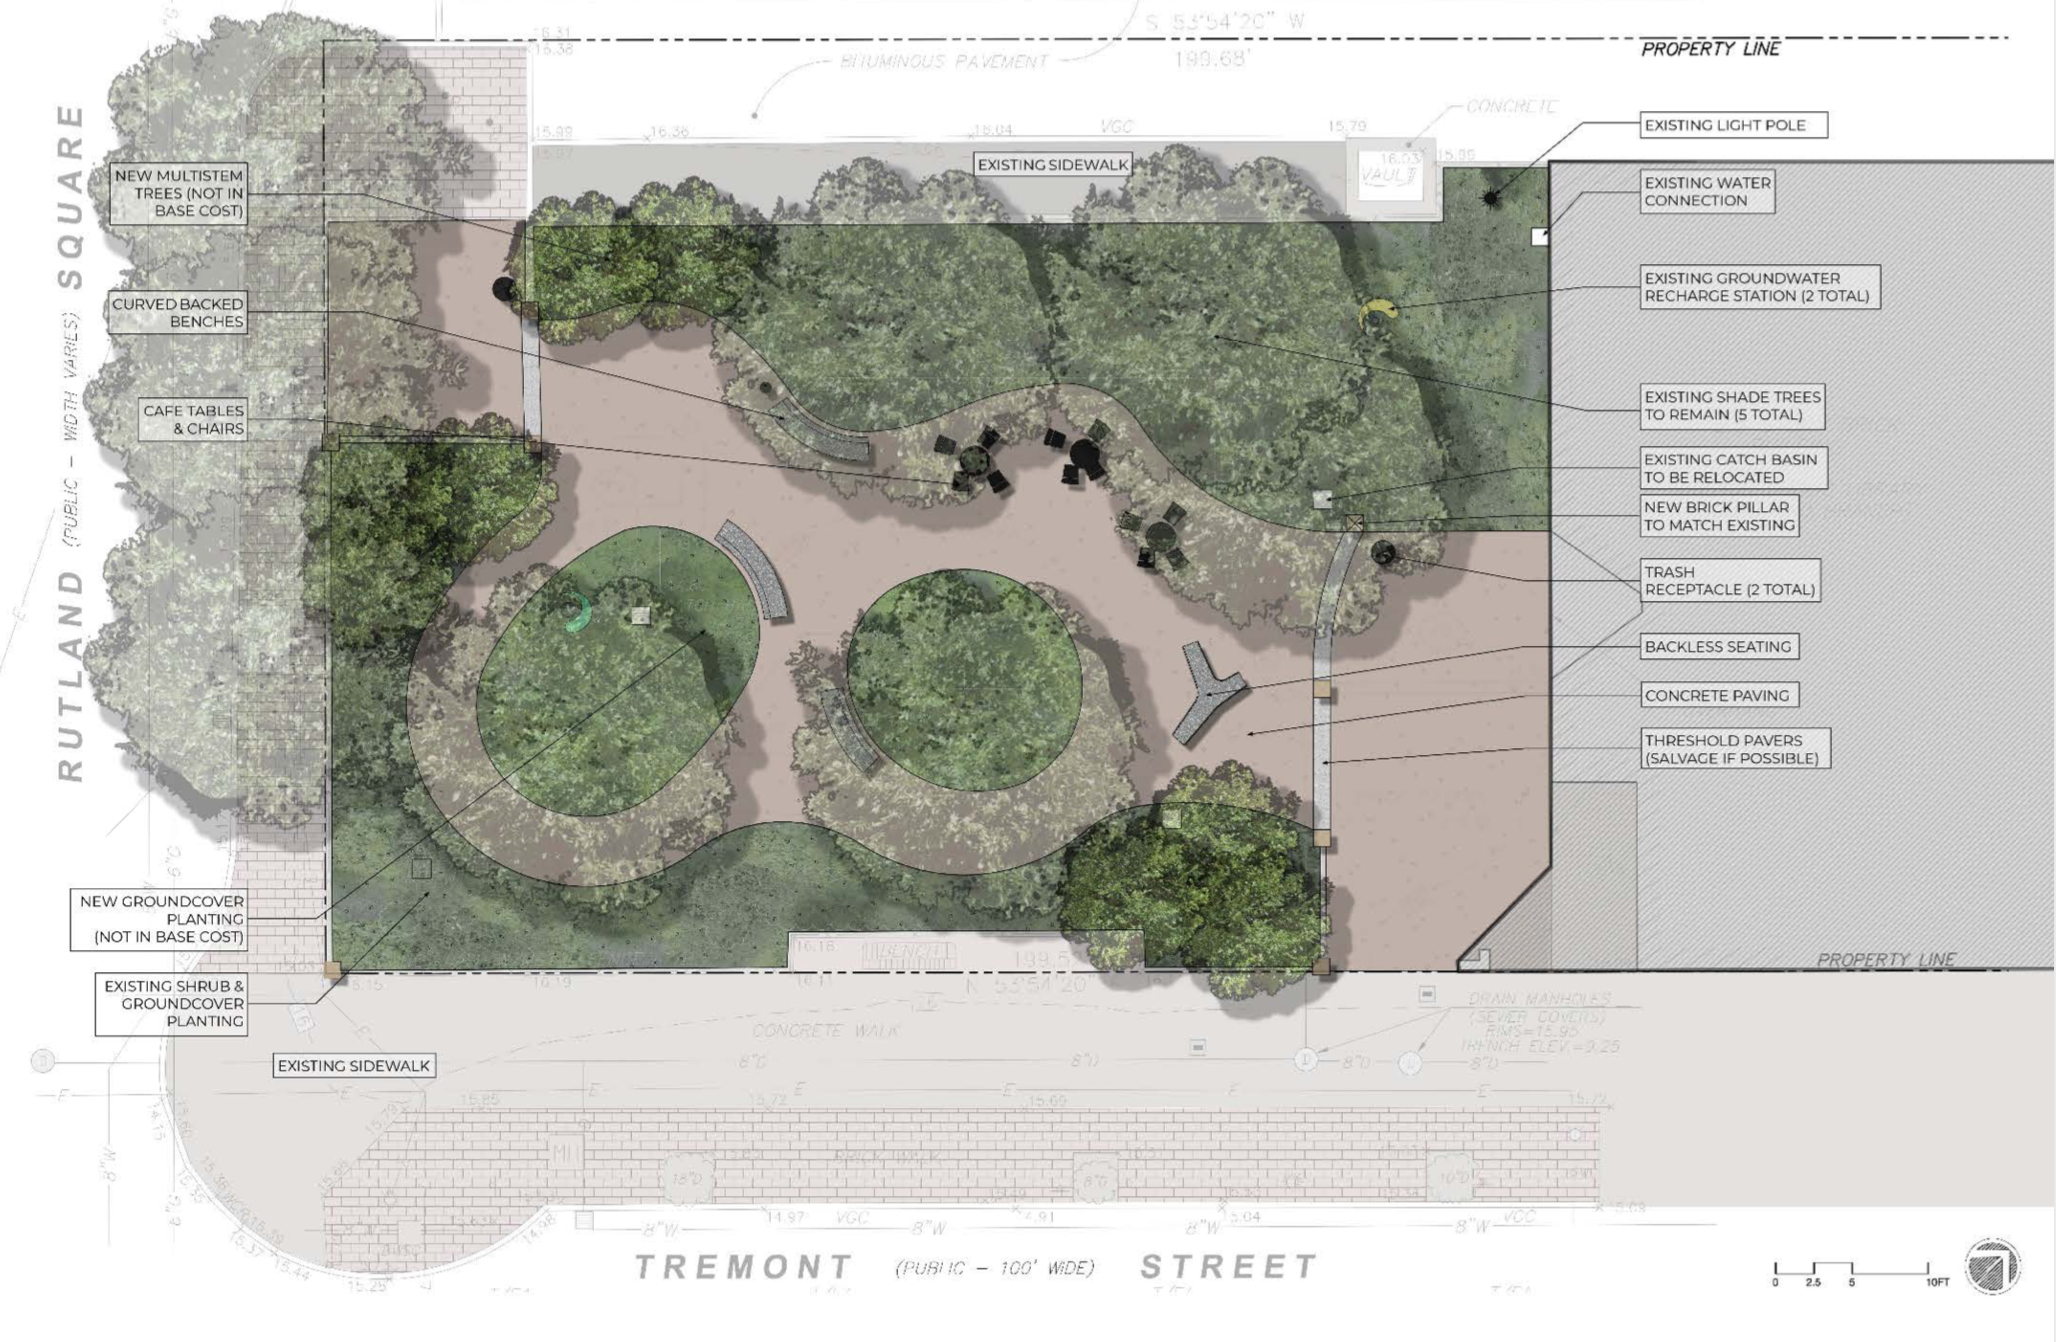 The re-design of Library Park proposed in January but not accepted by South End Landmark commissioners concerned about root system protection, foot traffic flow and the quality of the concrete hardscape.